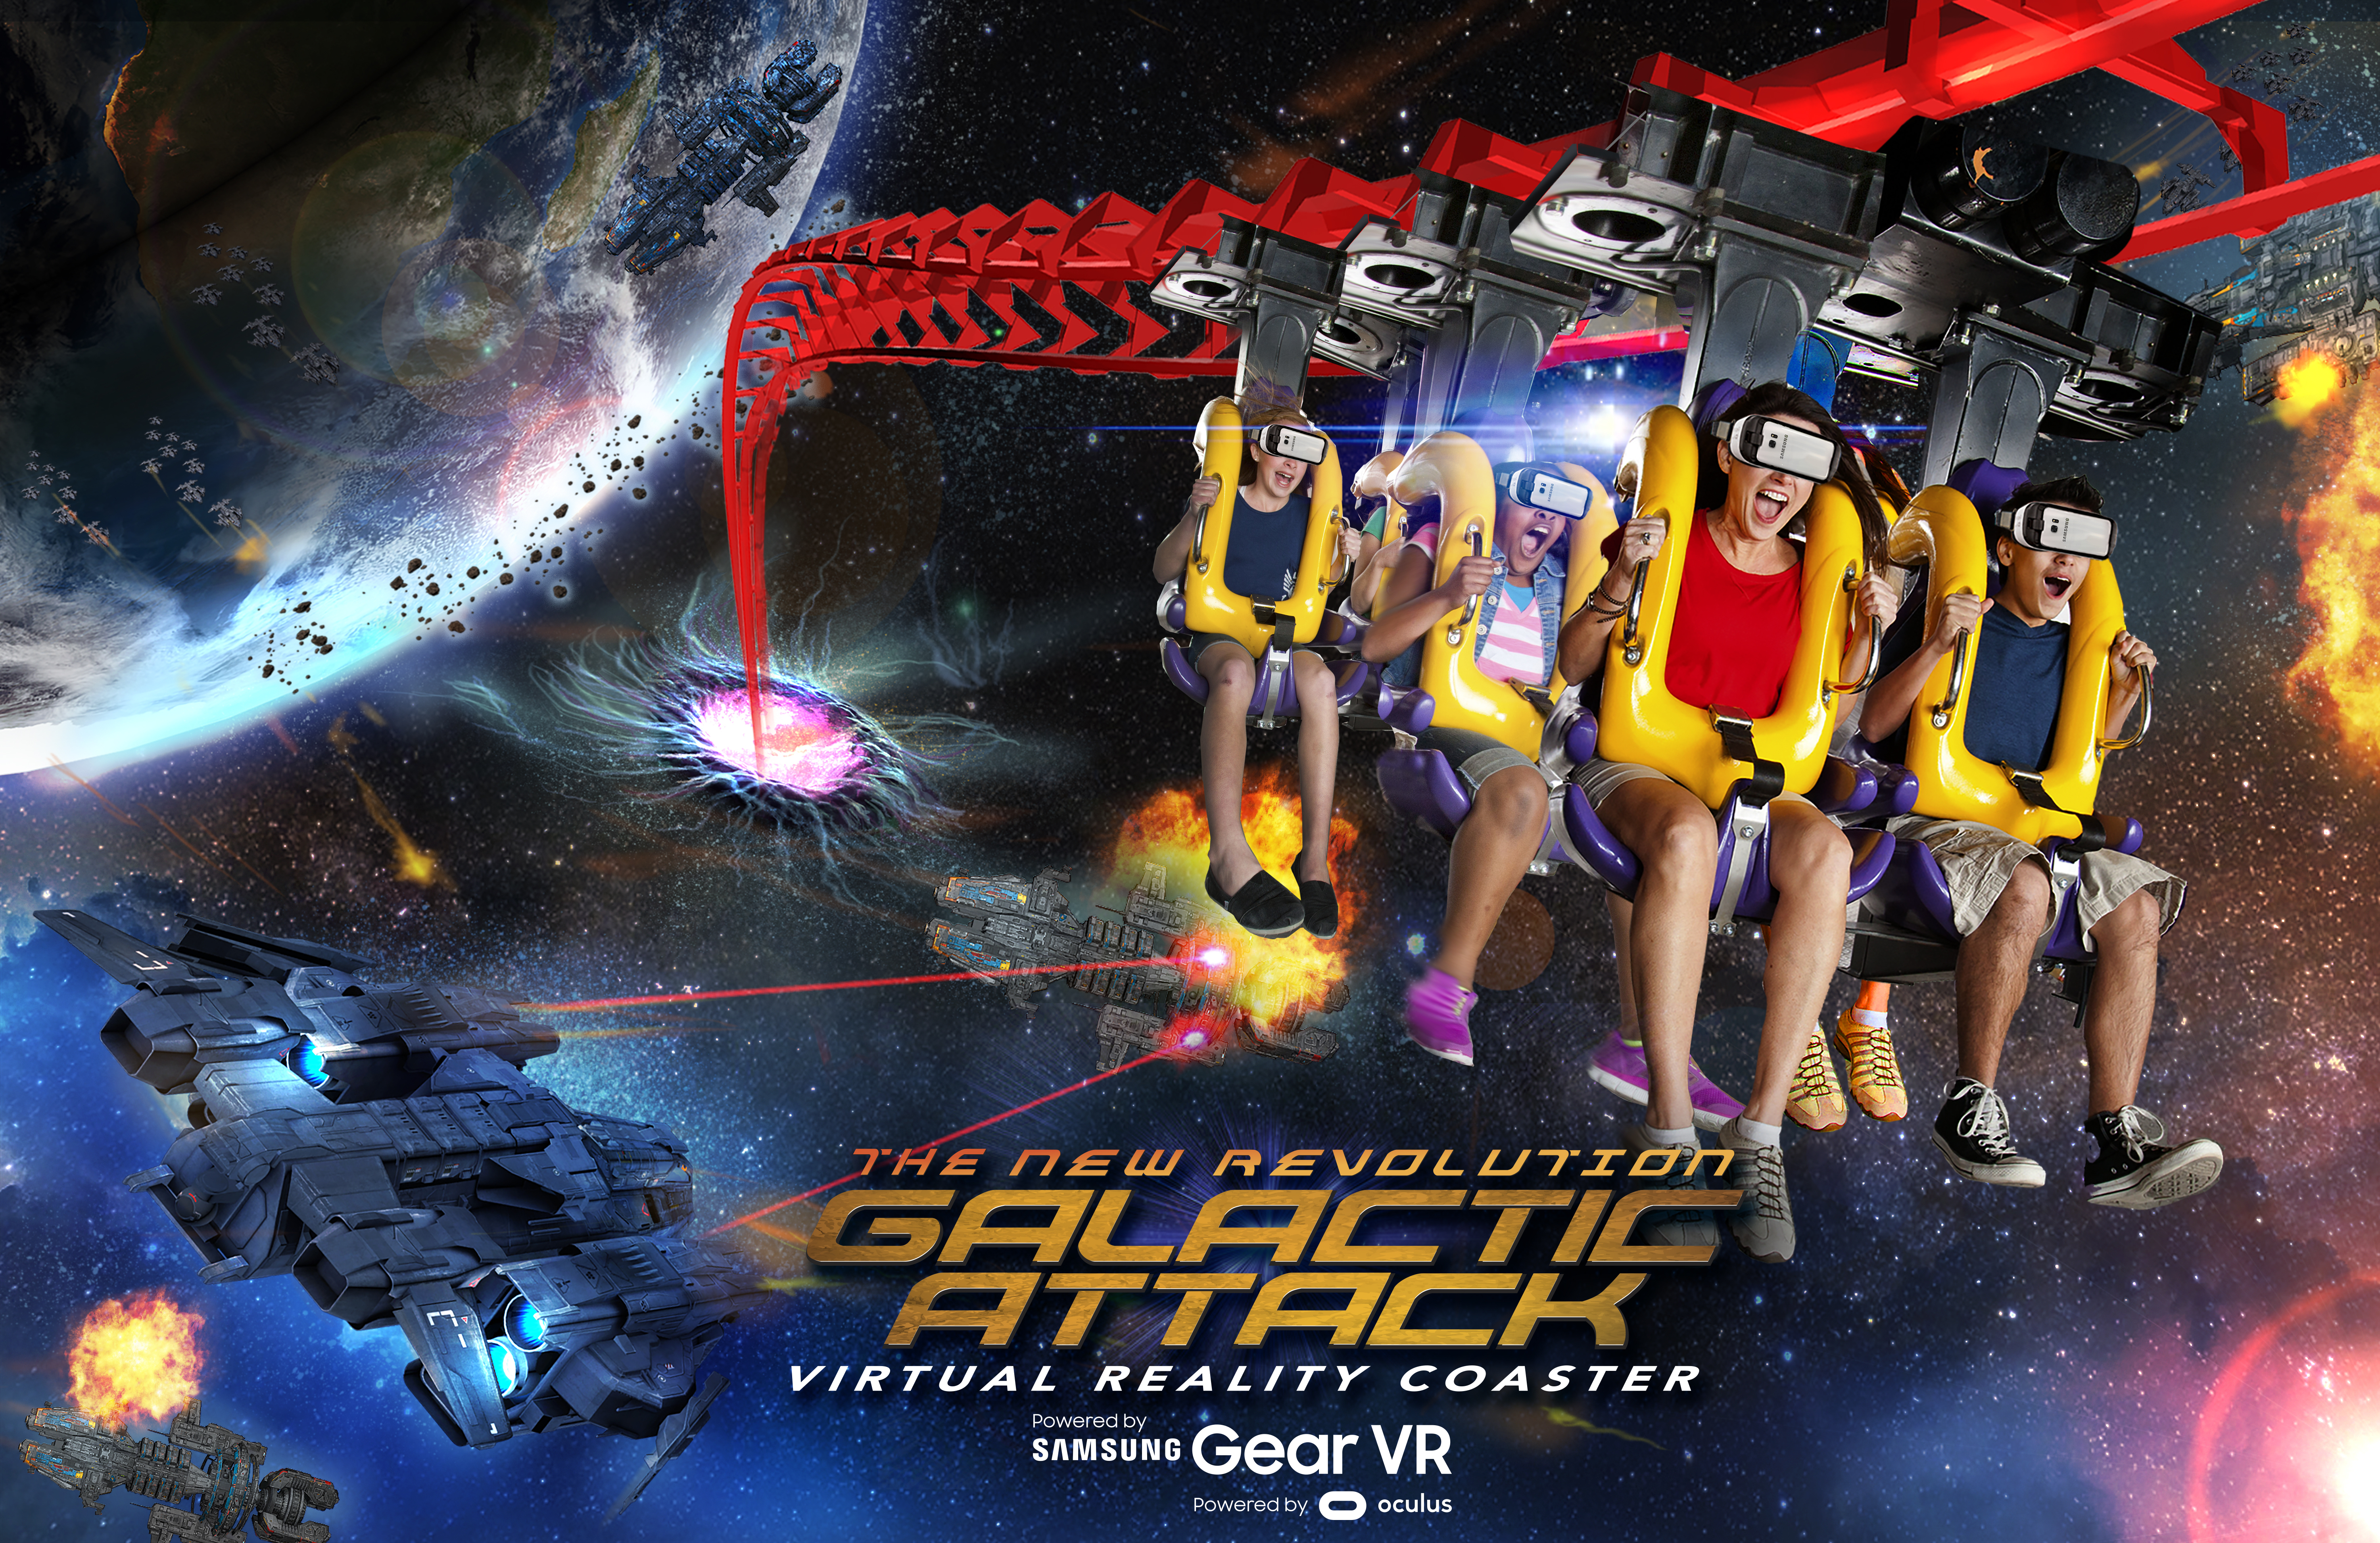 The New Revolution Galactic Attack at Six Flags (Graphic: Business Wire)